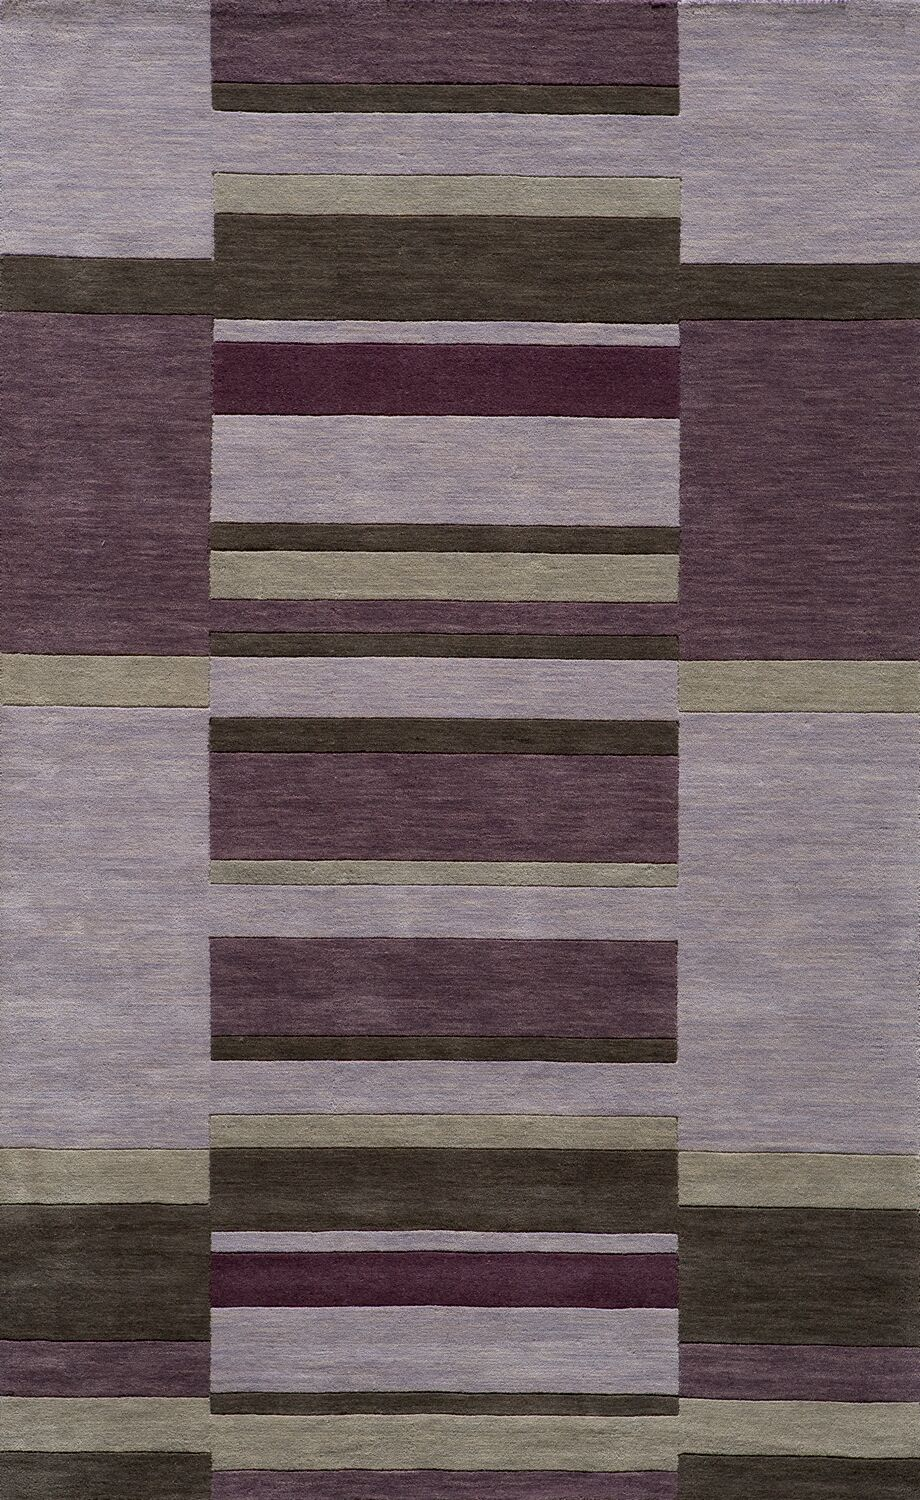 Gilda Hand-Tufted Lilac Area Rug Rug Size: Rectangle 5' x 8'